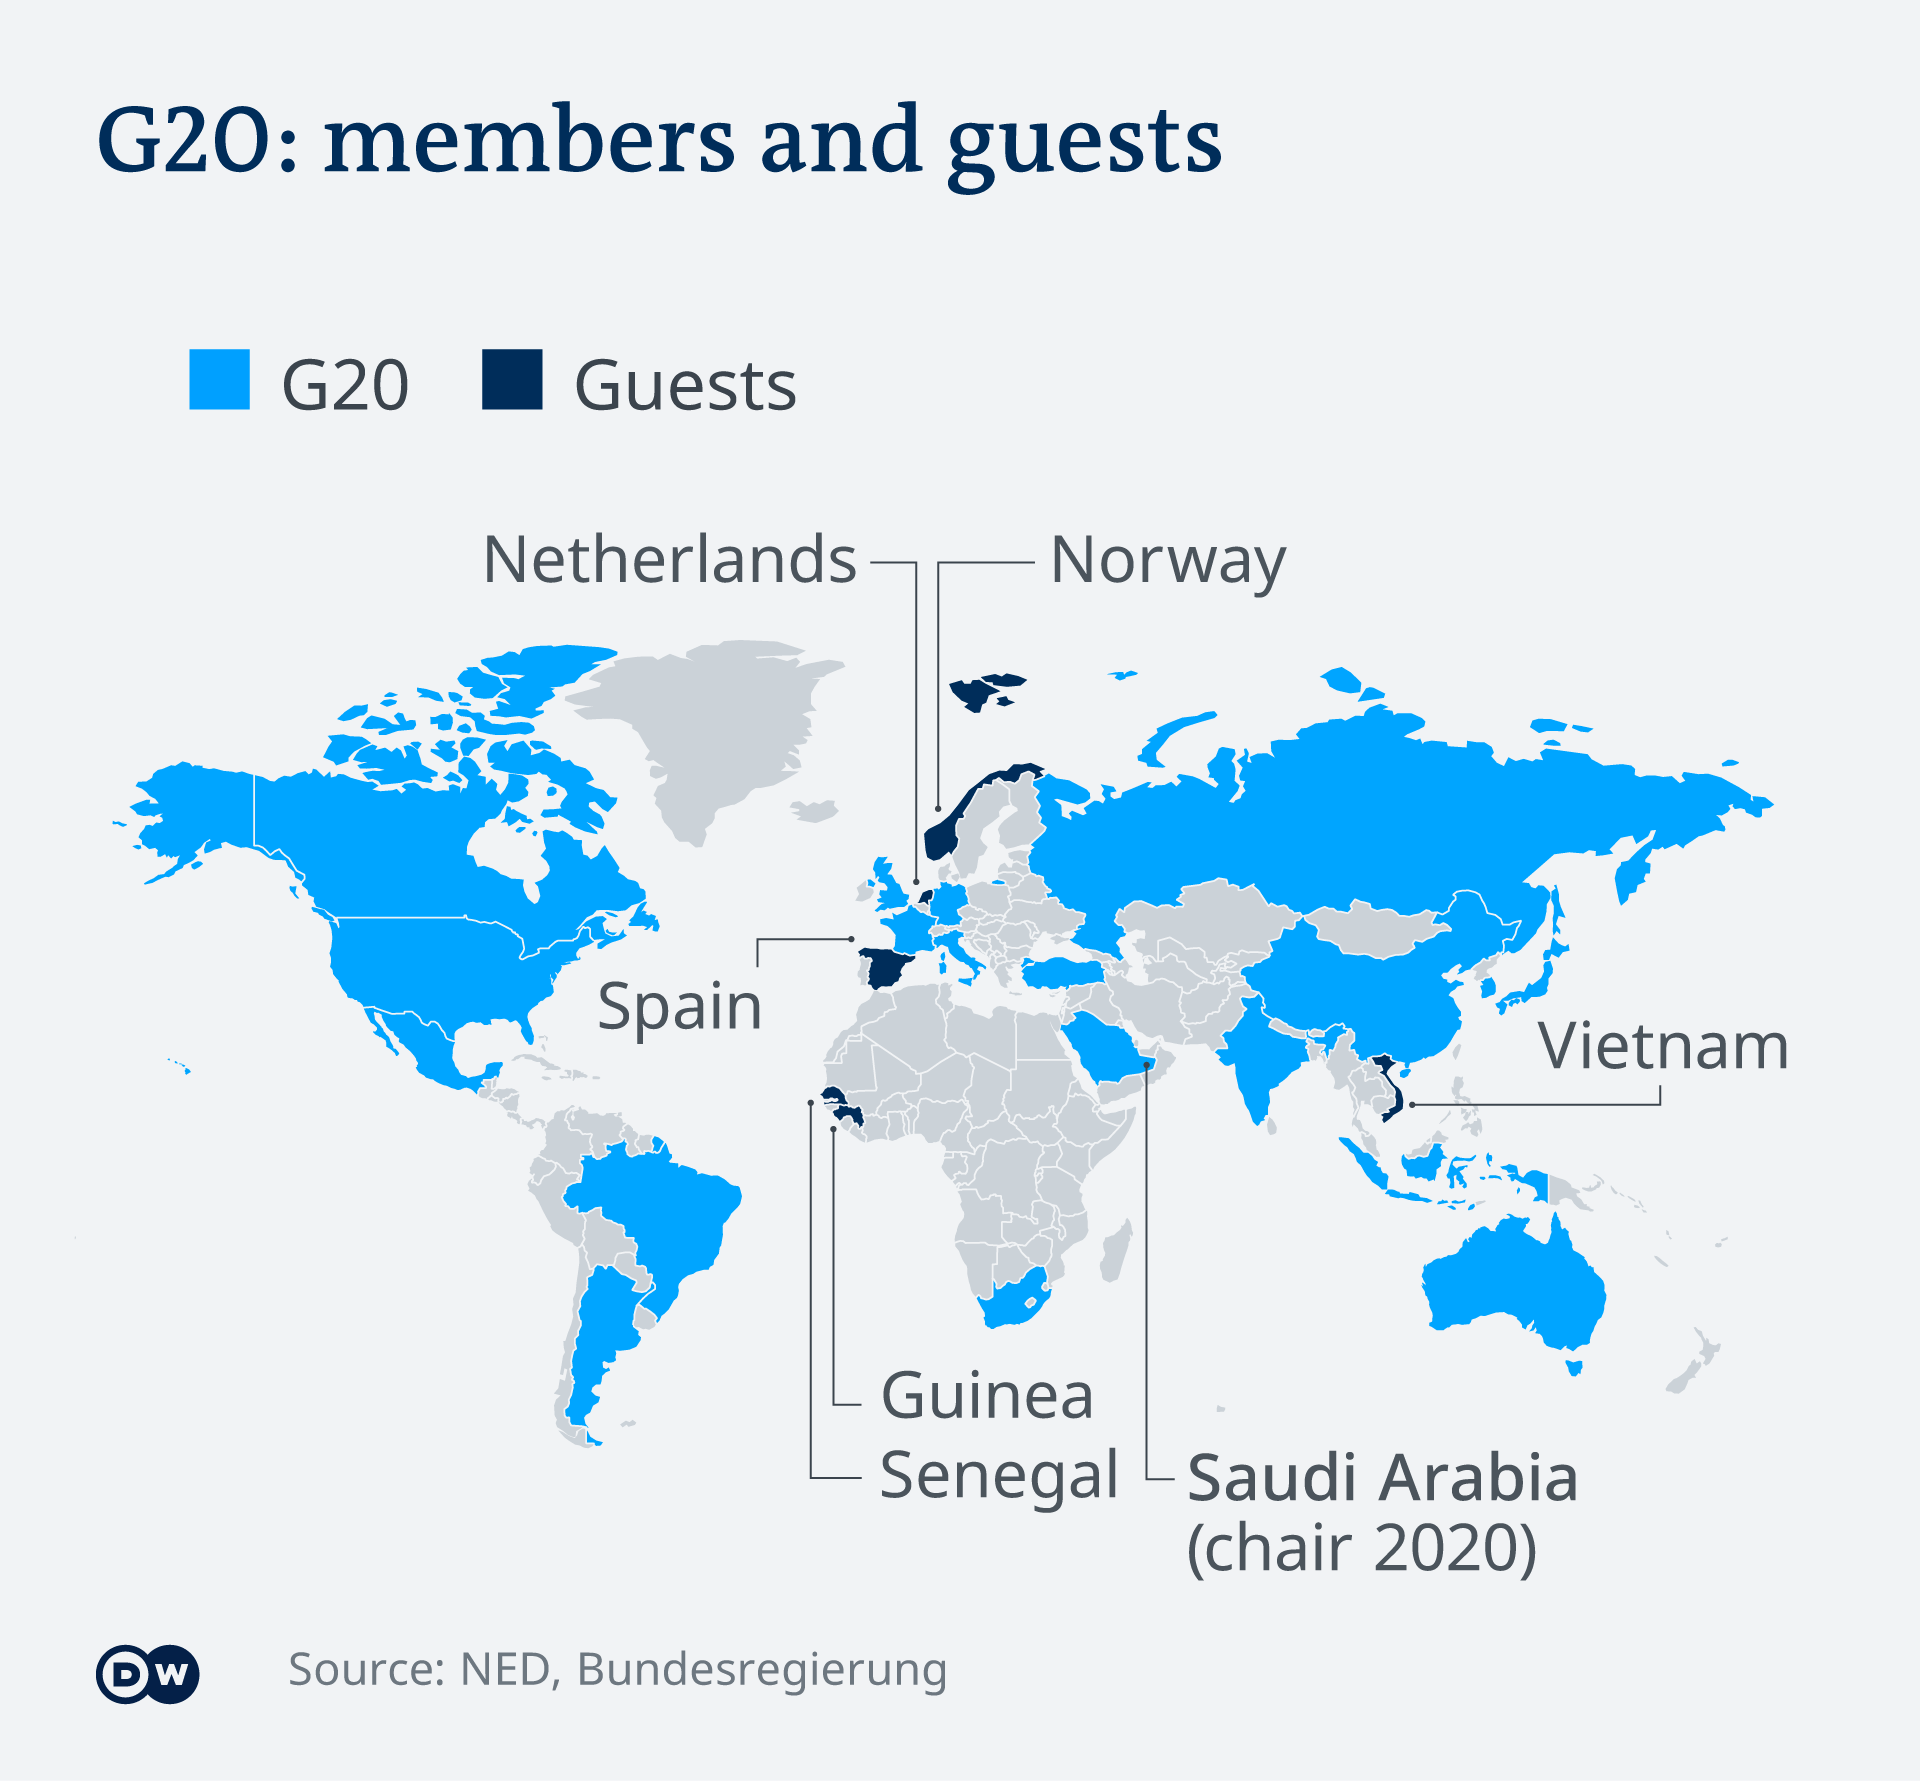 Infographic showing G20 members and guests